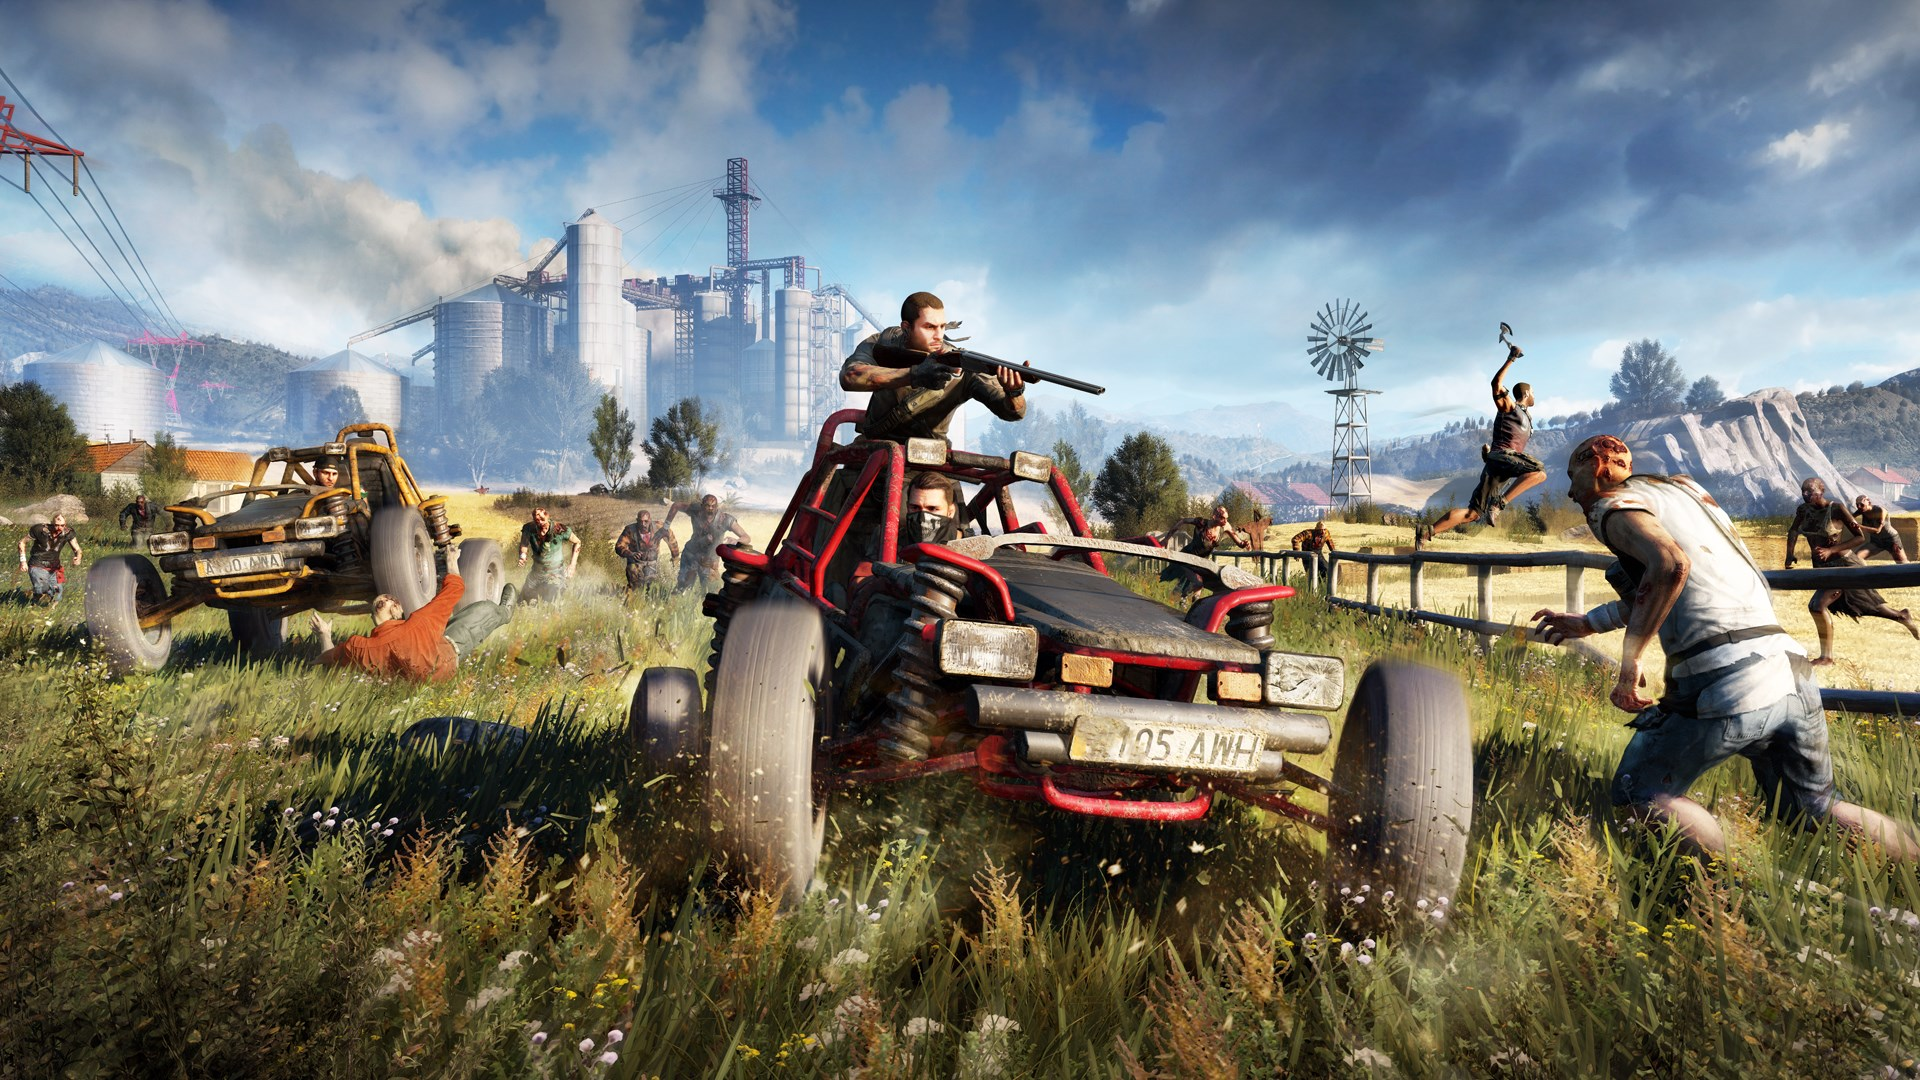 Zombie Games Xbox One: These Are the Top Picks